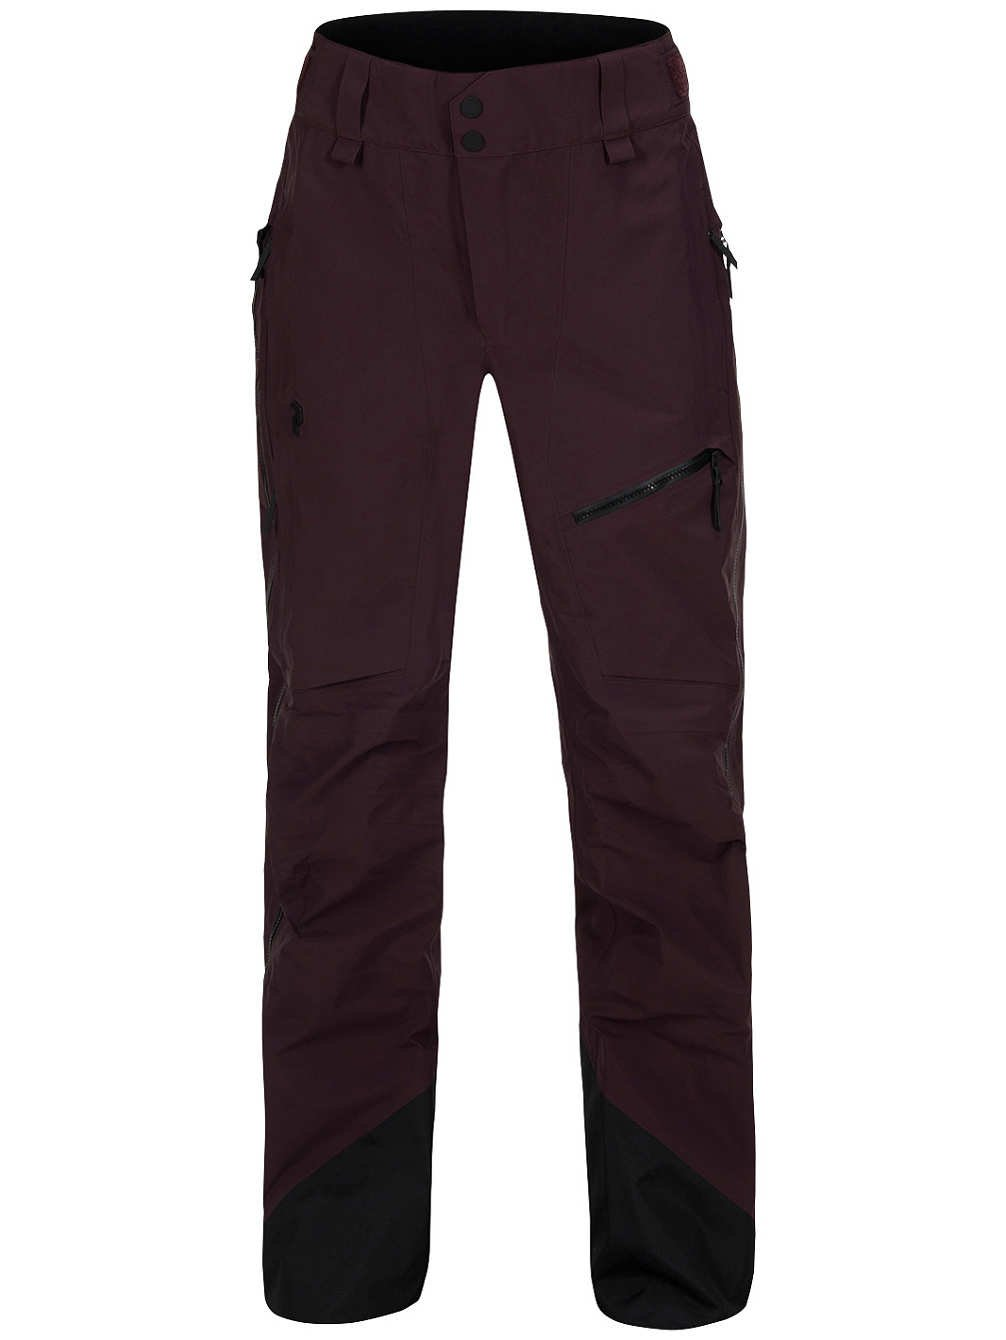 Peak Performance - Alpine Damen Skihose (dunkelrot)